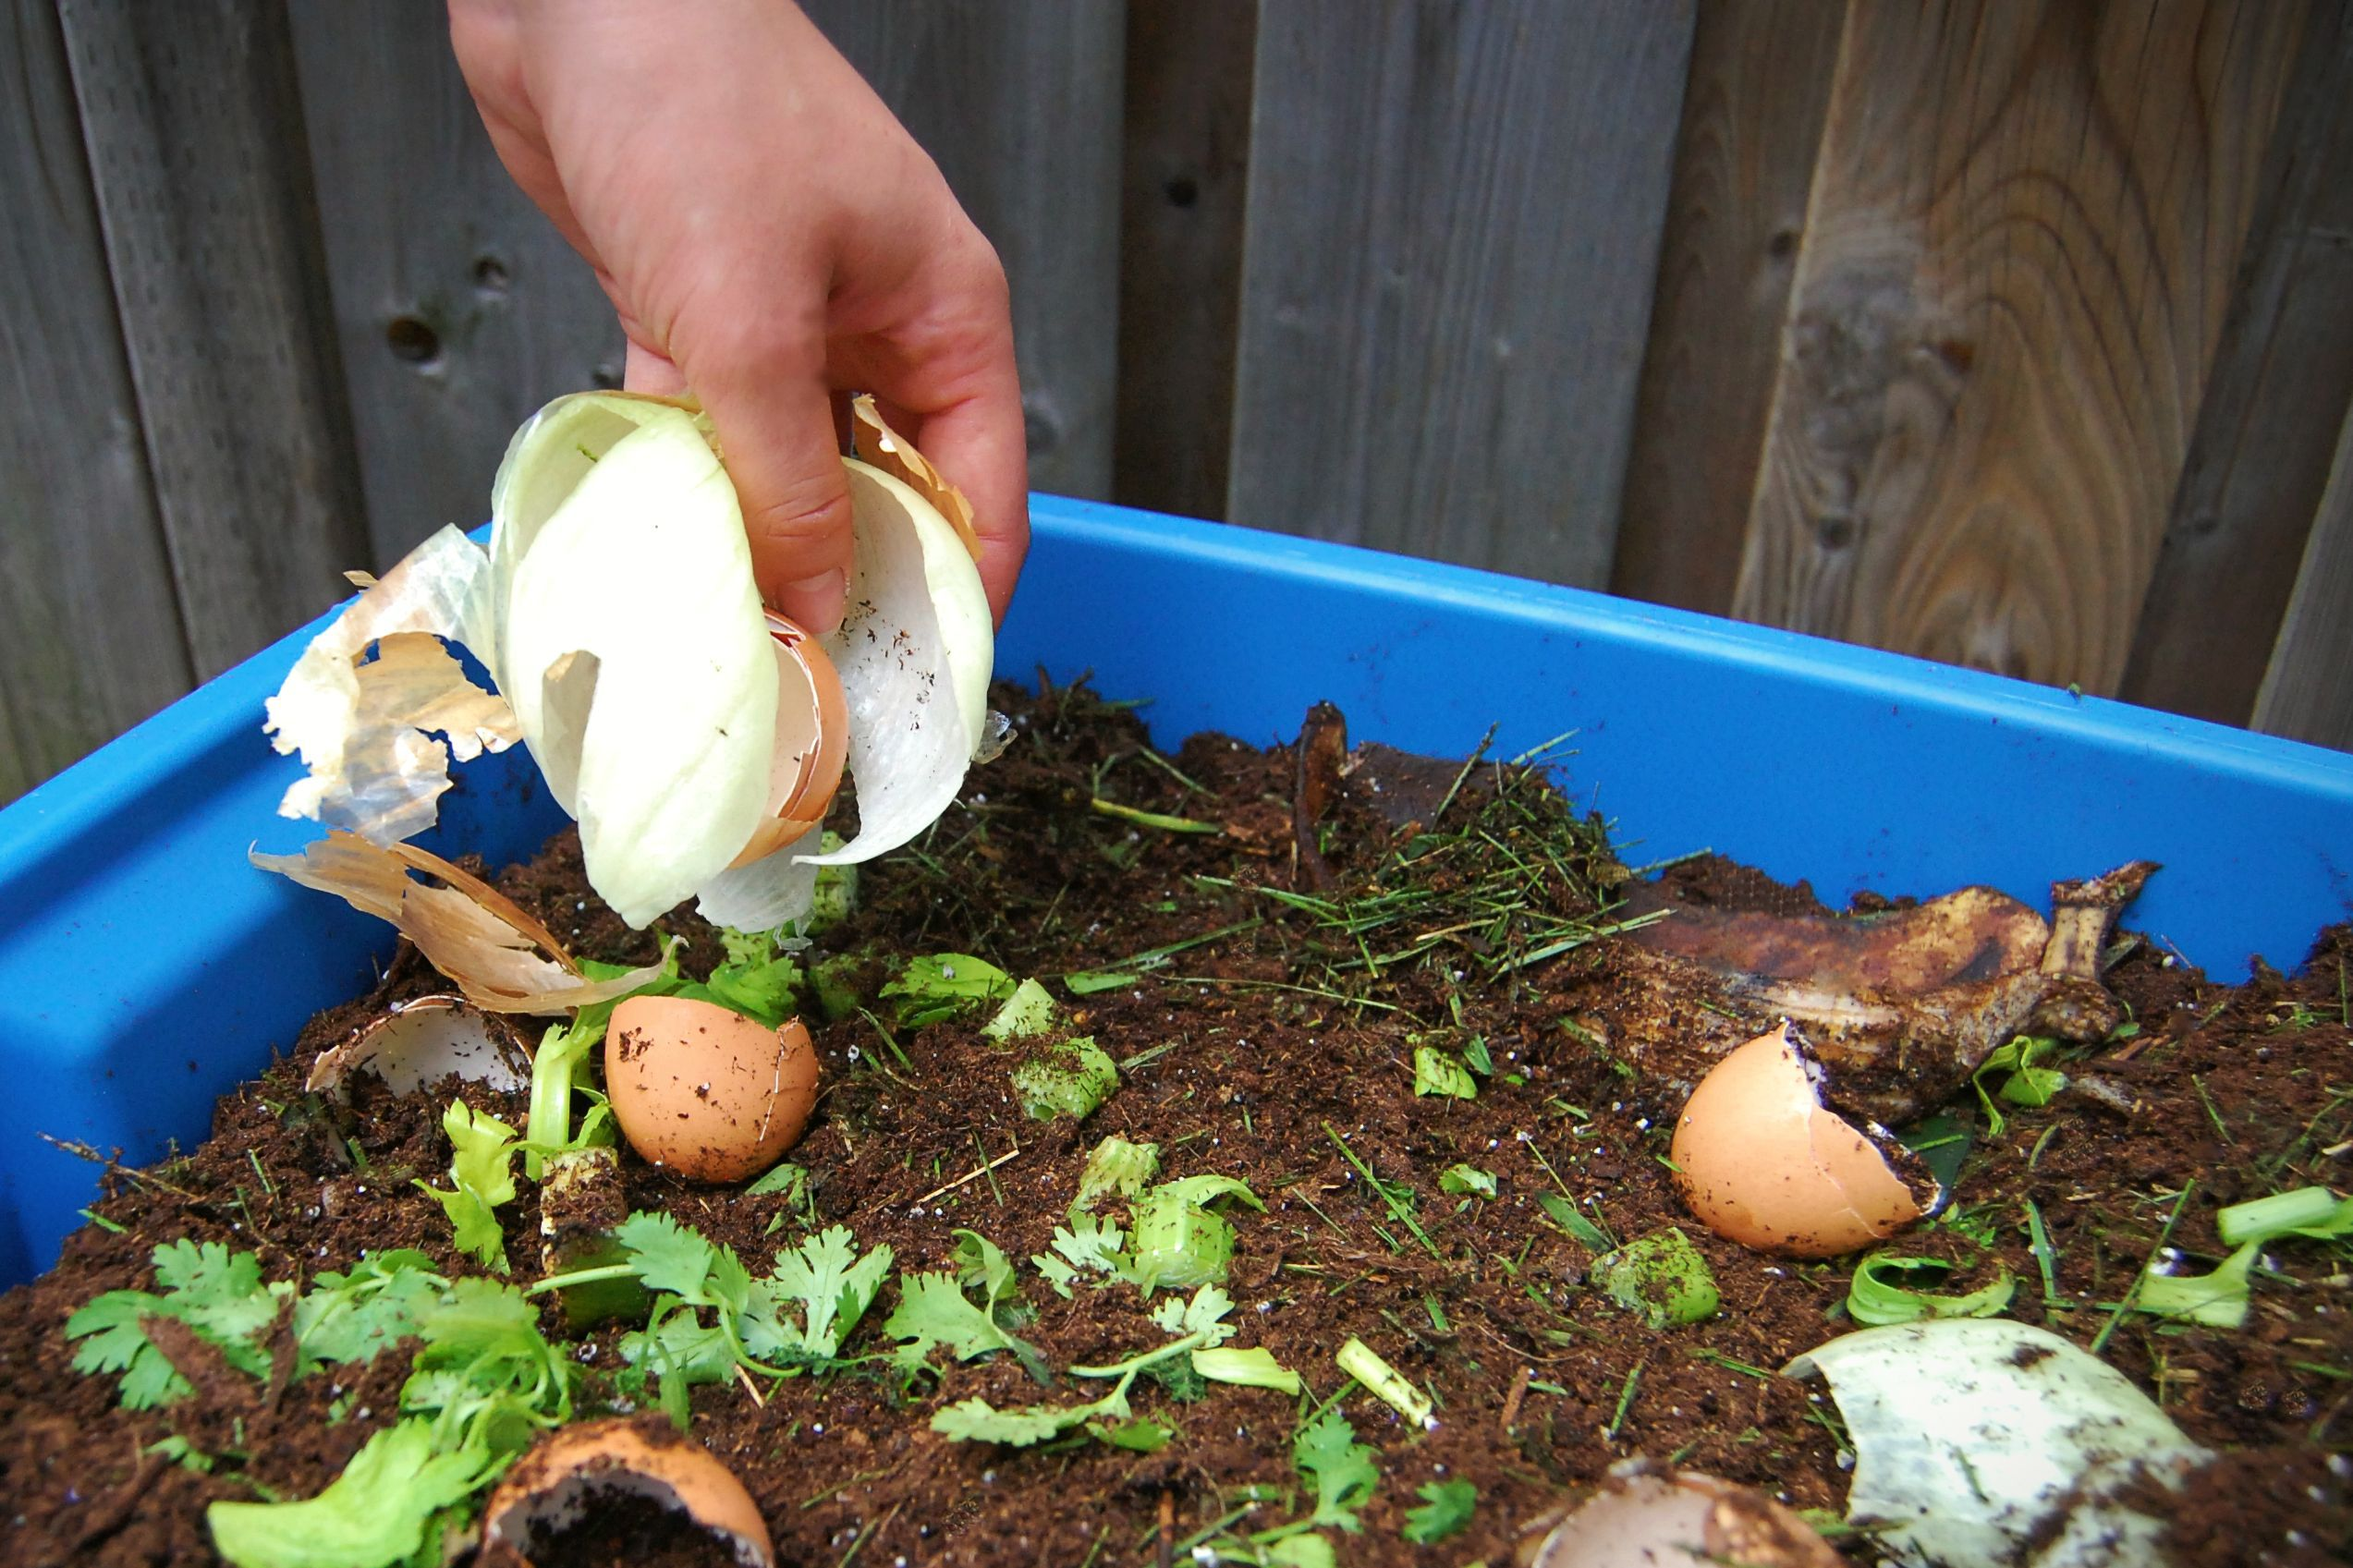 How to Make a Compost Bin Using a Plastic Storage Container